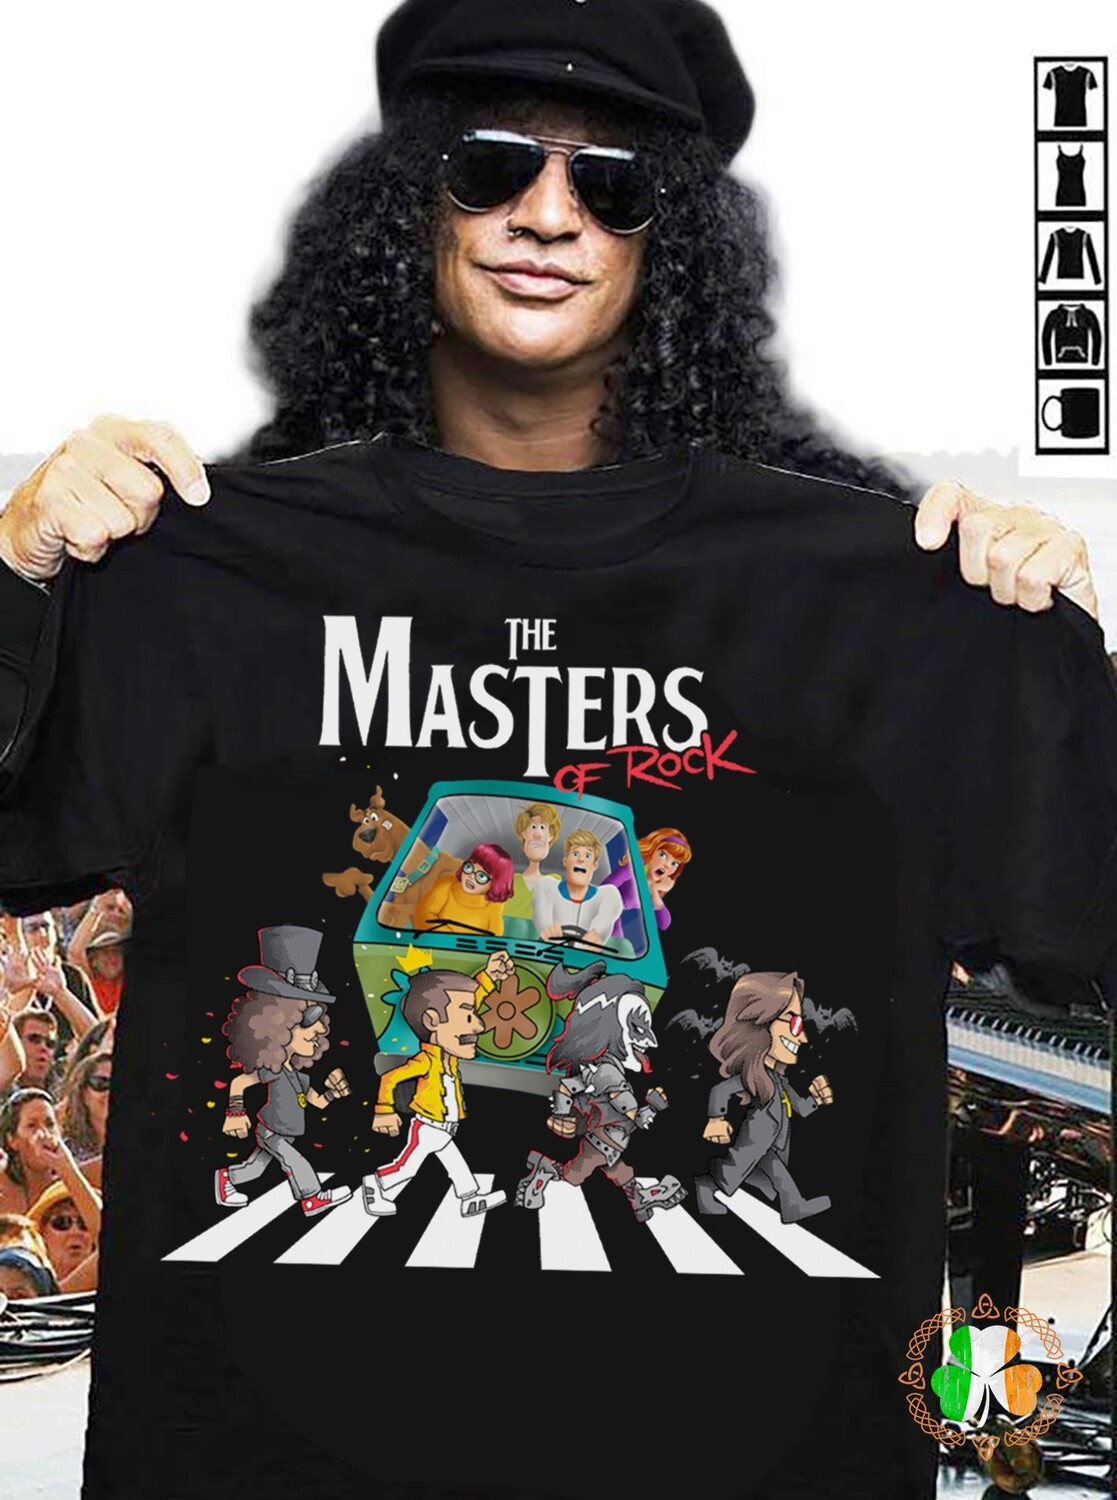 Scooby Doo The Masters Of Rock Shirt